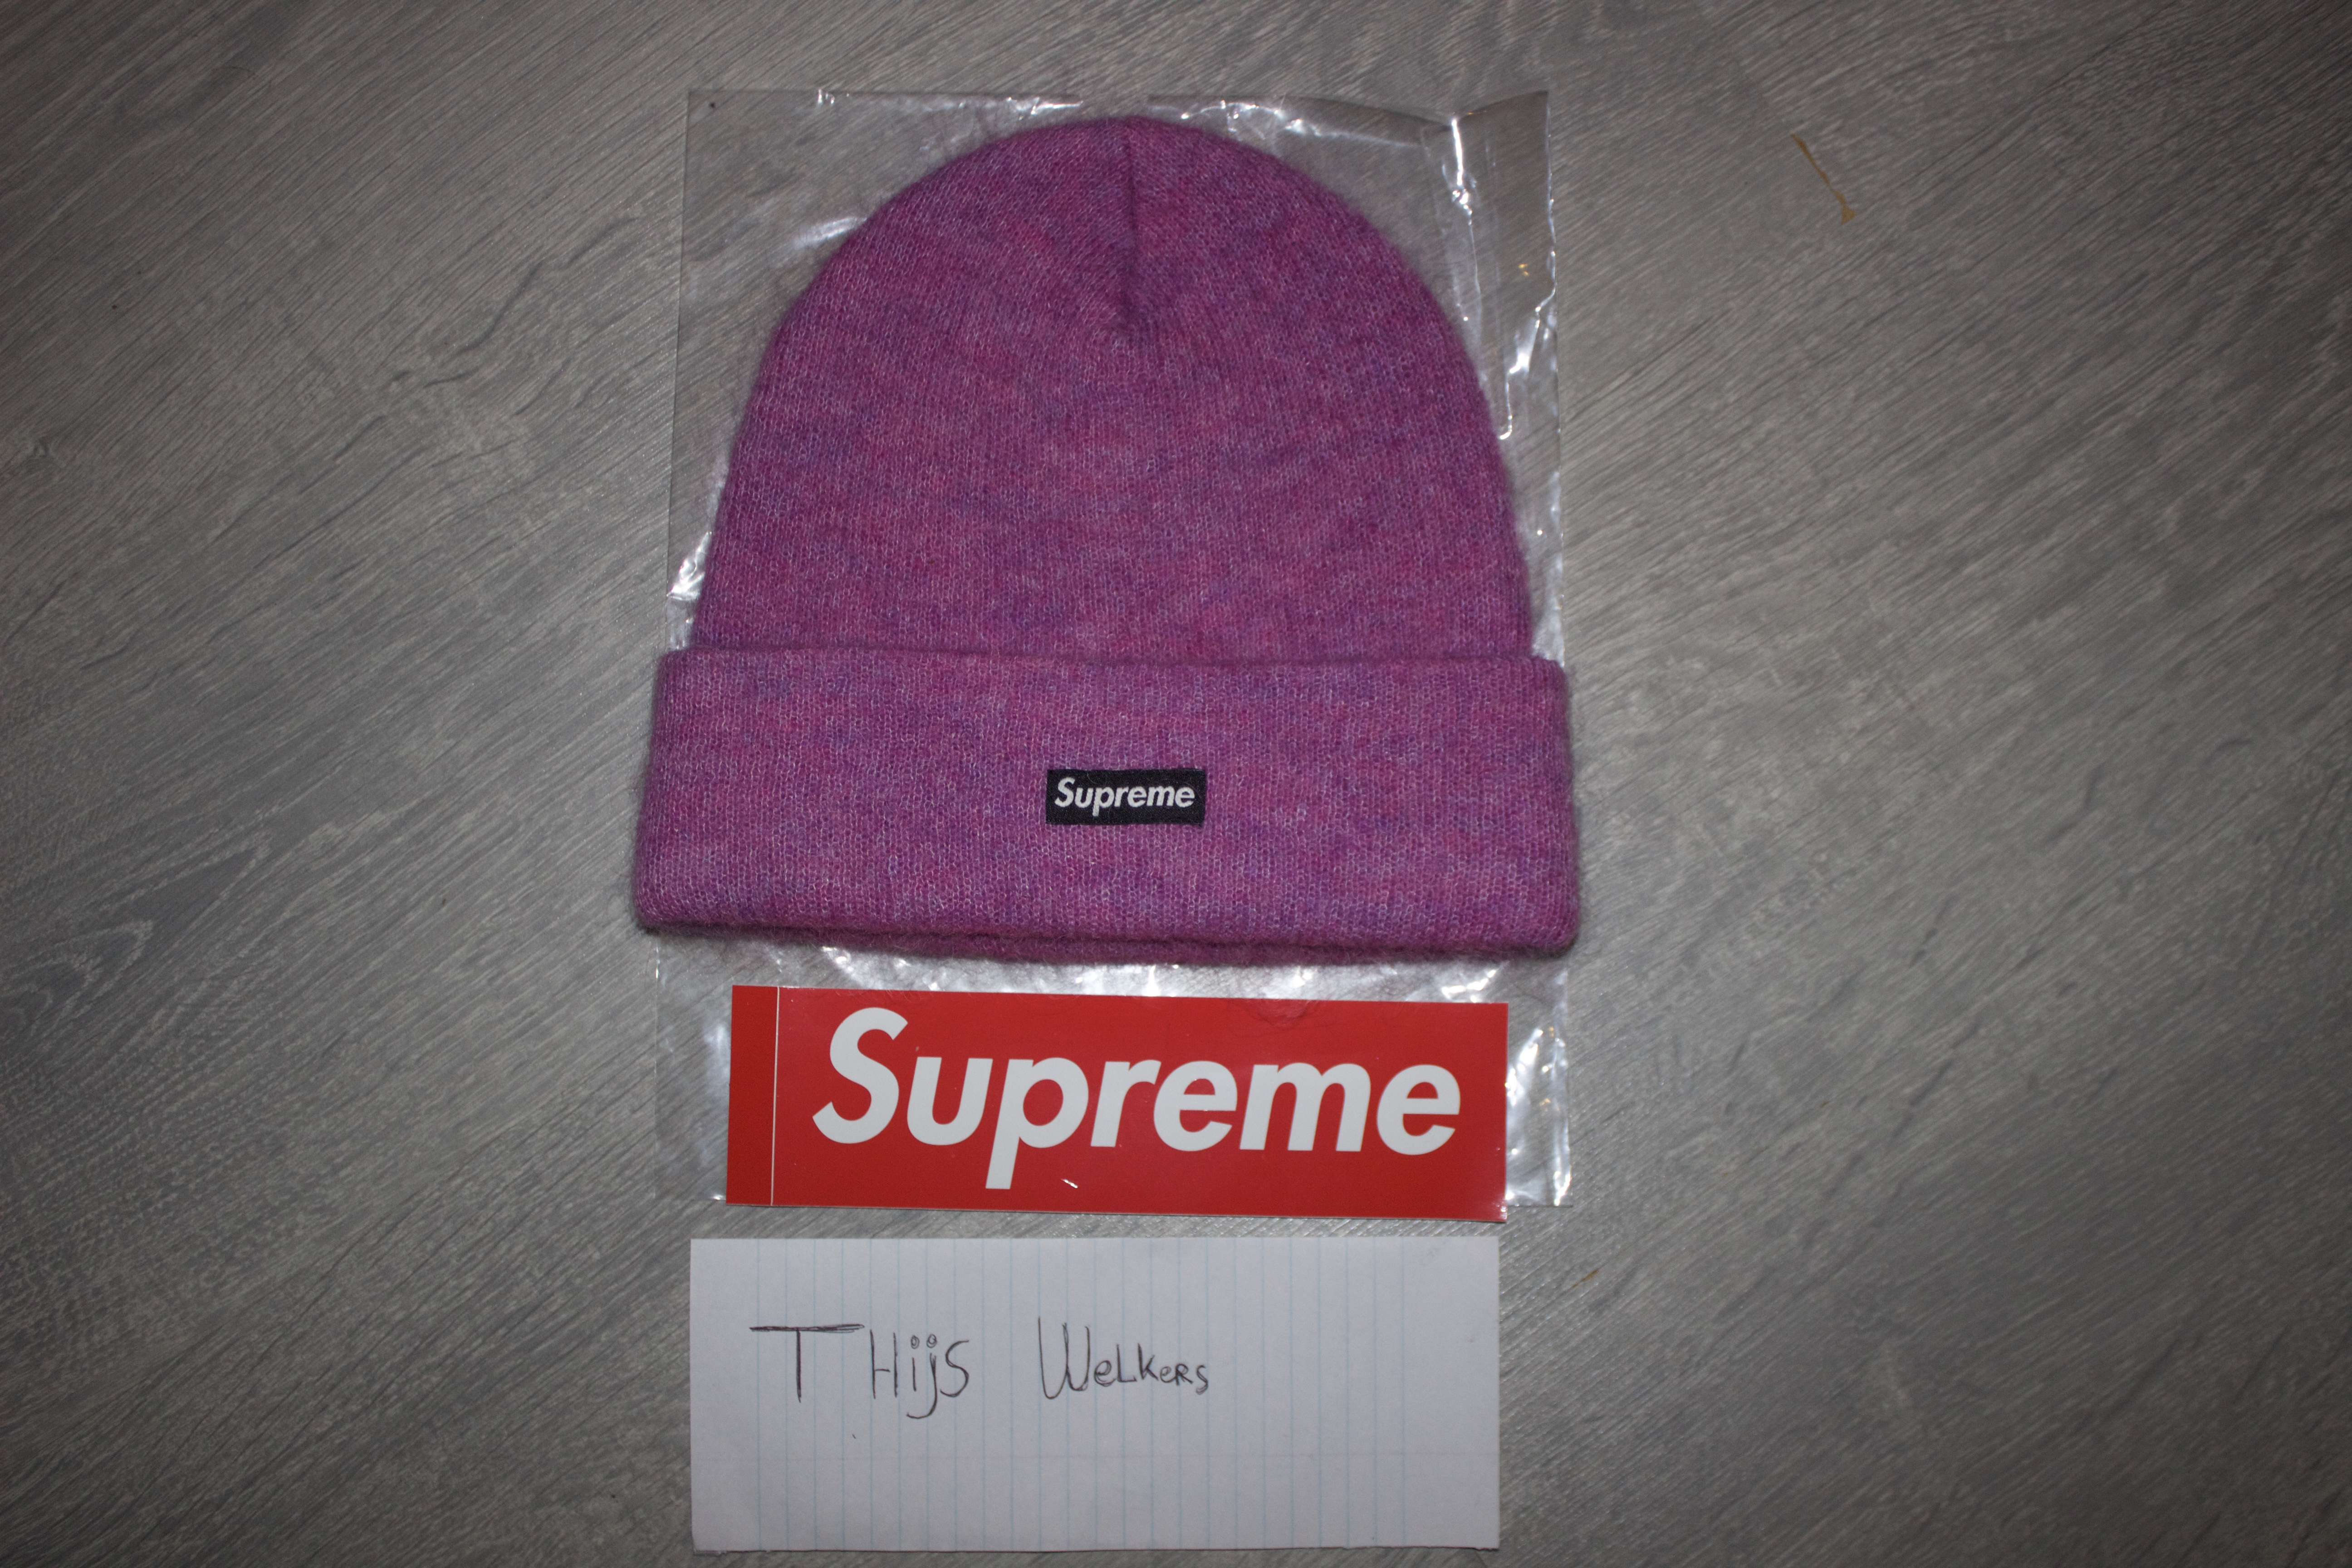 8c21e0f34d57f Supreme Supreme Mohair Beanie Pink Size one size - Hats for Sale - Grailed